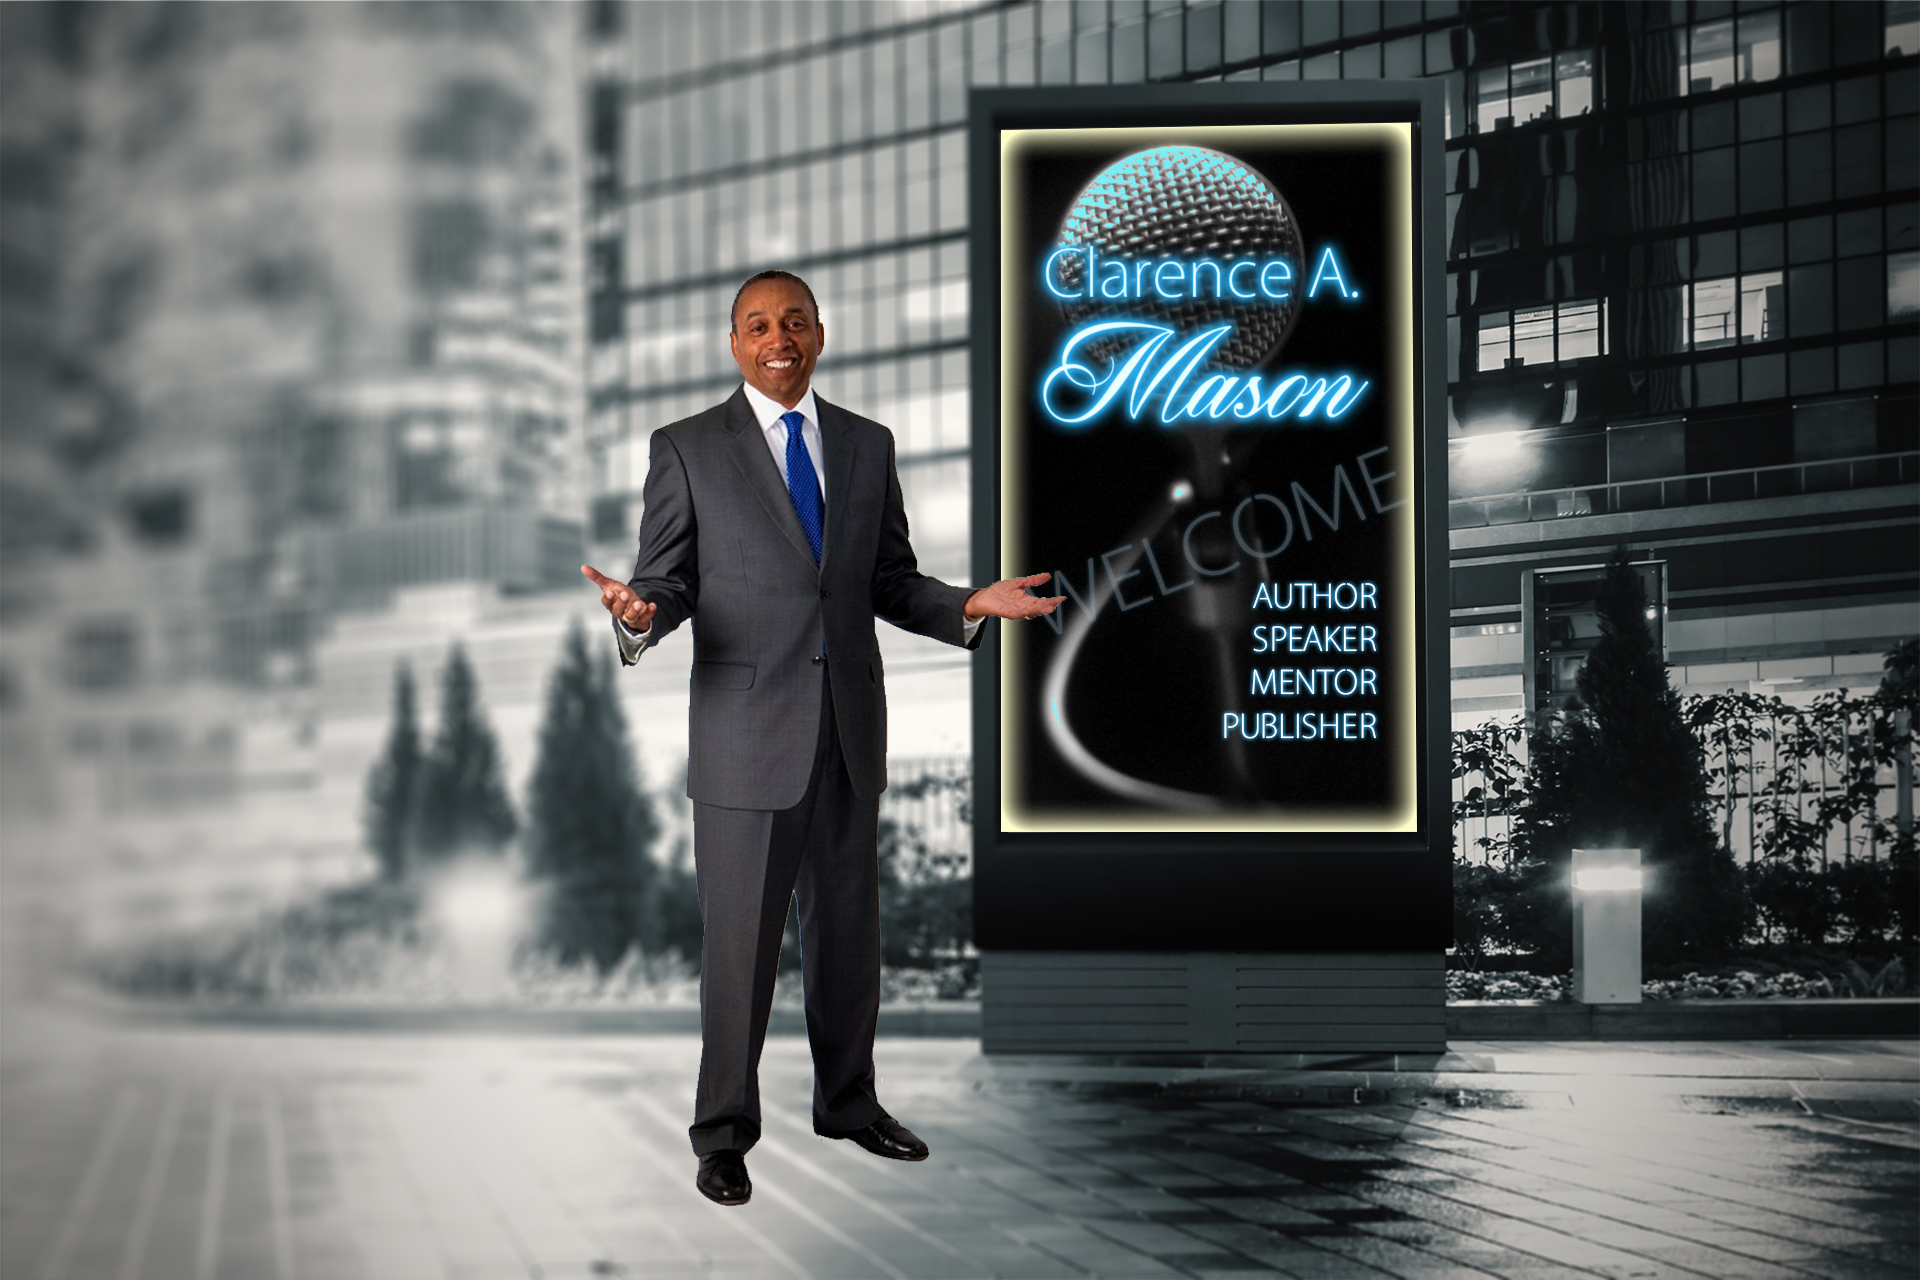 Clarence A Mason, book him for an event